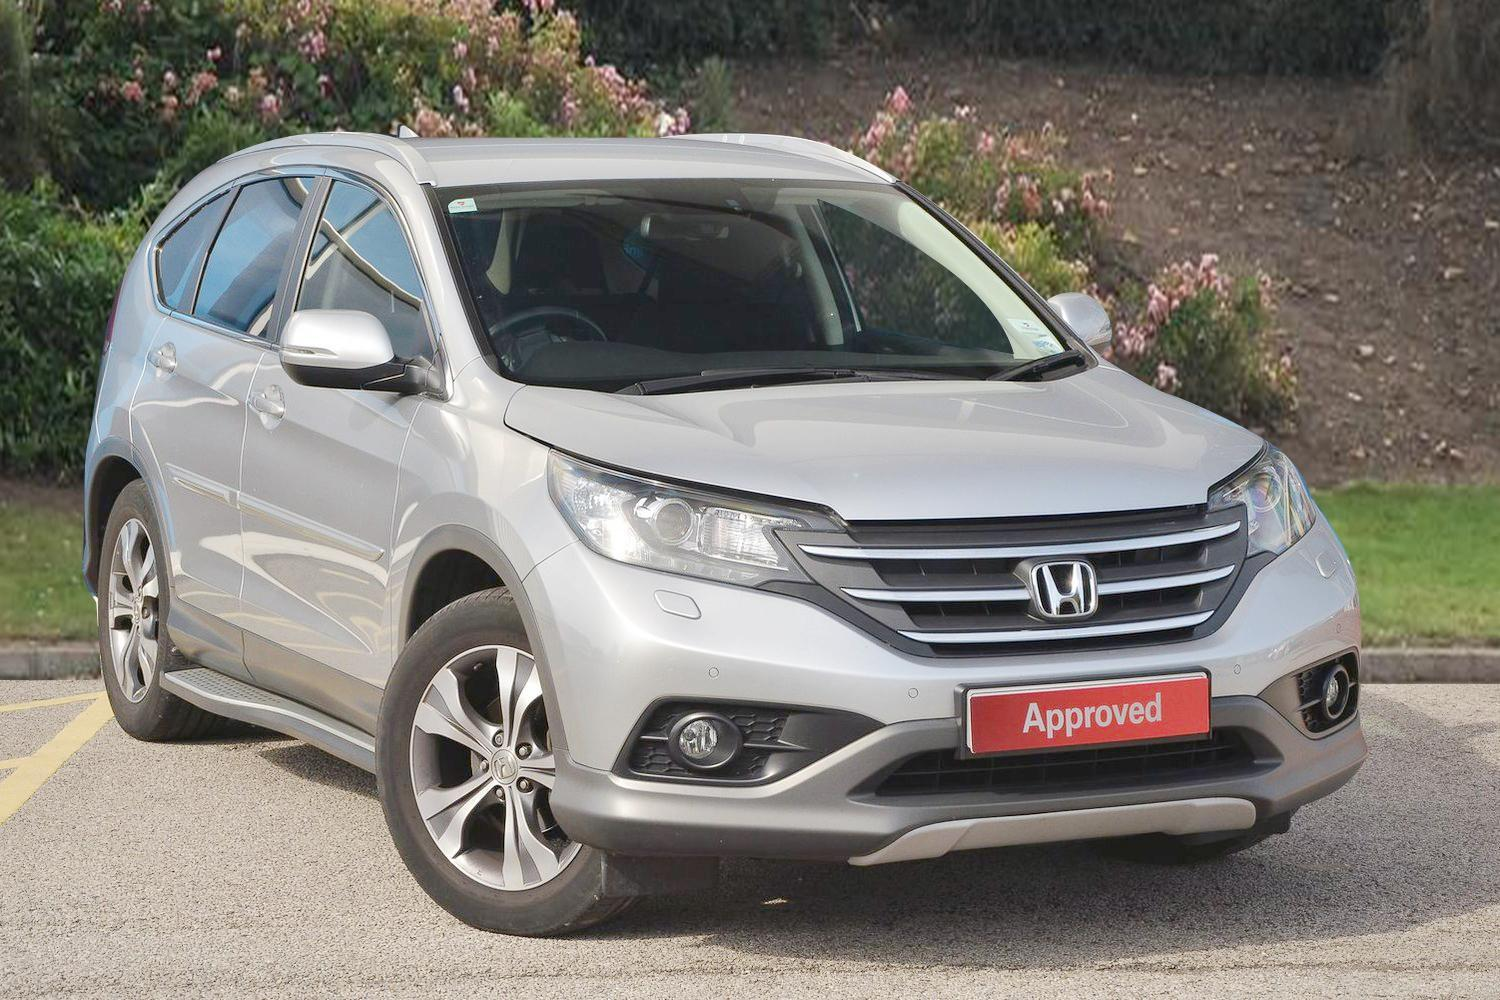 used honda cr v 2 0 i vtec sr 5dr auto petrol estate for sale vertu honda. Black Bedroom Furniture Sets. Home Design Ideas